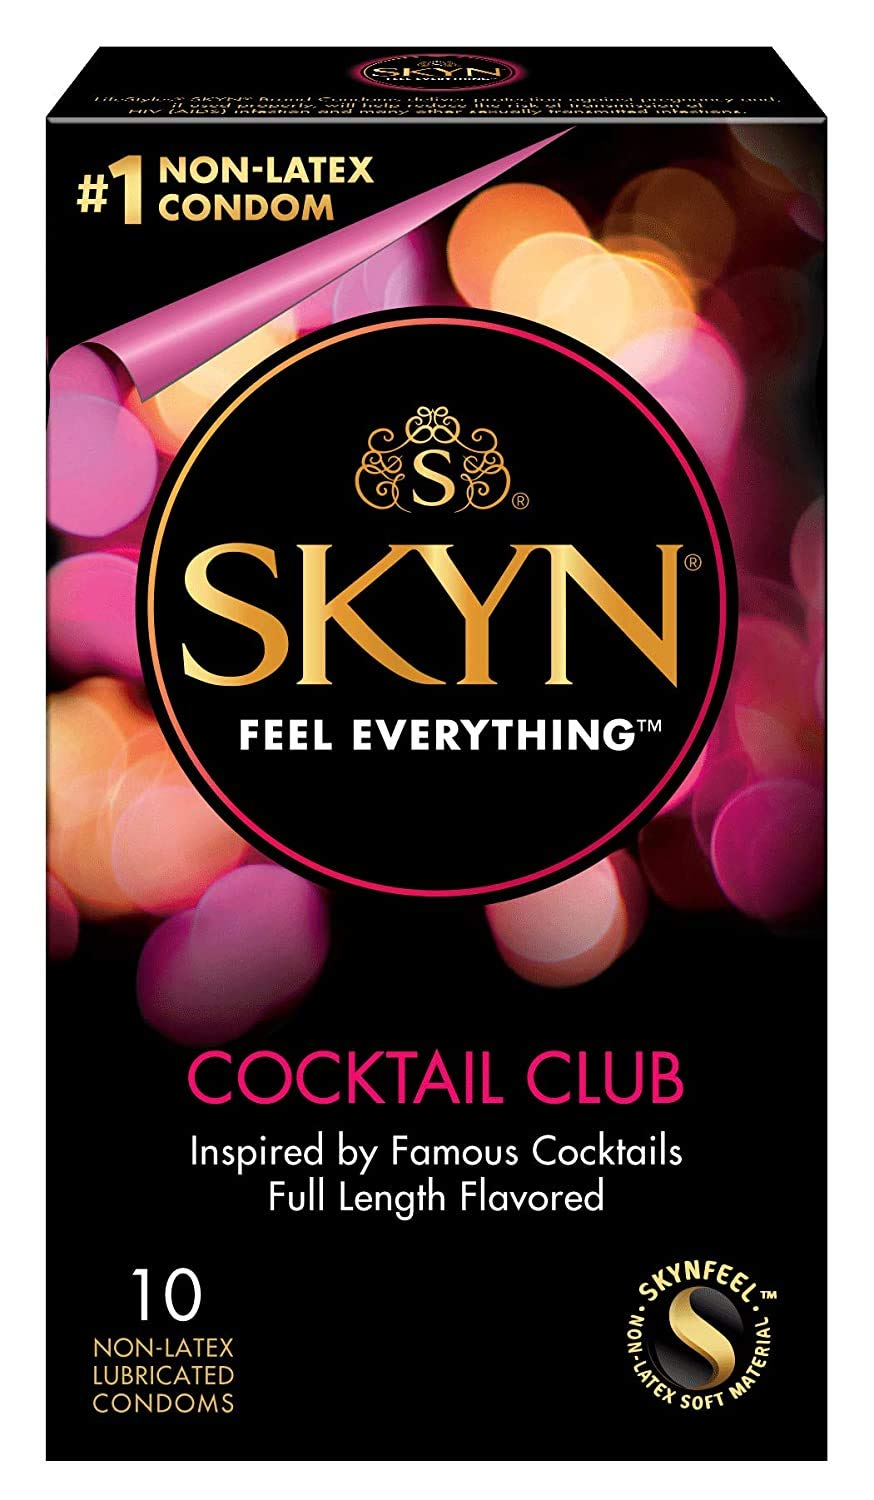 SKYN Cocktail Club Premium Flavored Condoms, 10 Count